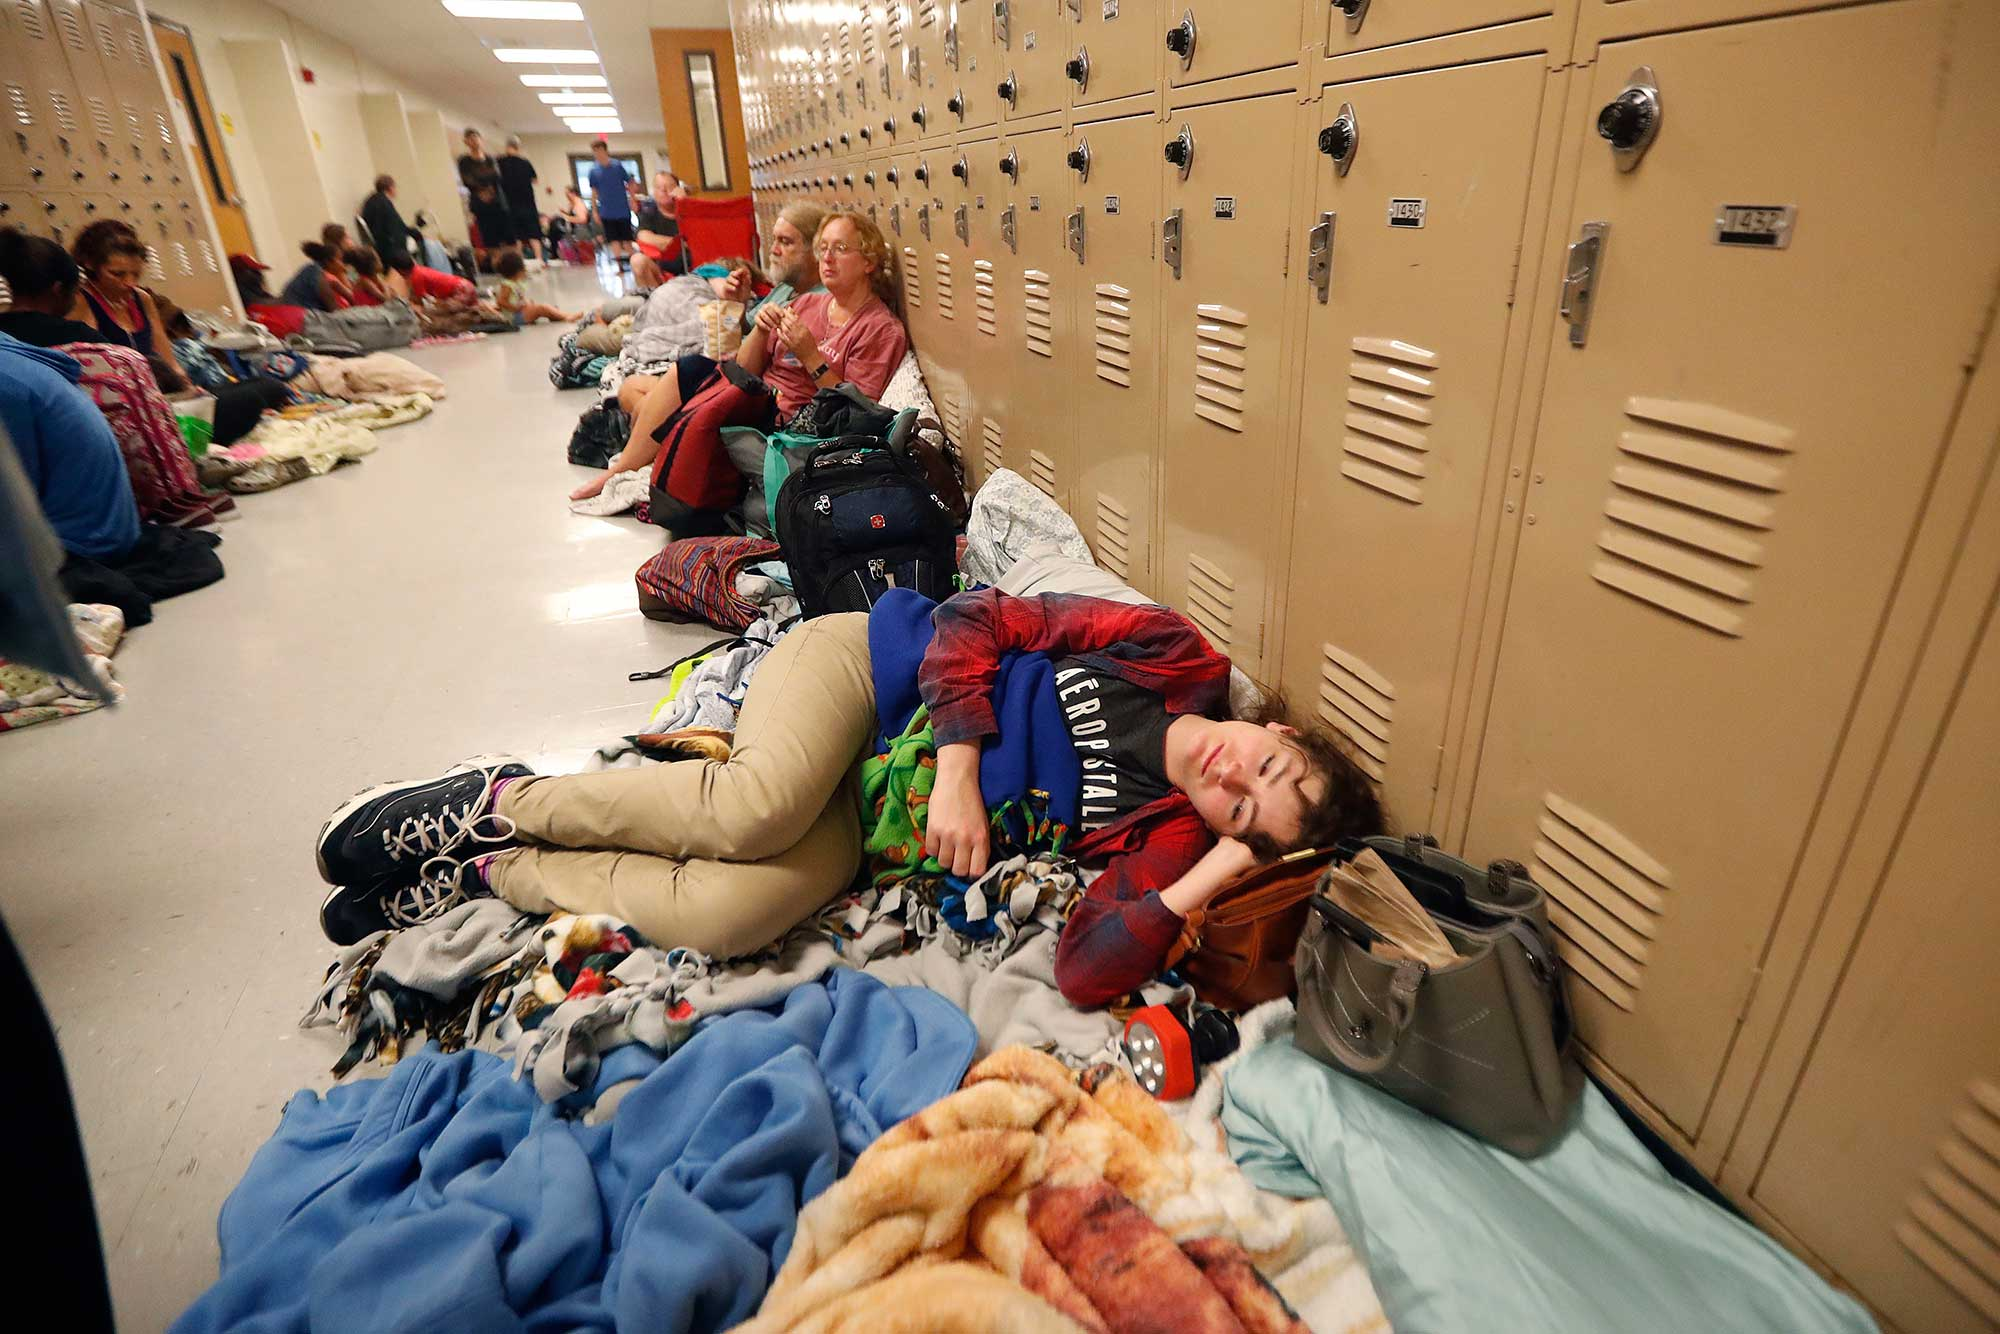 "<div class=""meta image-caption""><div class=""origin-logo origin-image none""><span>none</span></div><span class=""caption-text"">Emily Hindle lies on the floor at an evacuation shelter set up at Rutherford High School, in advance of Hurricane Michael on Wednesday. (Gerald Herbert/AP Photo)</span></div>"